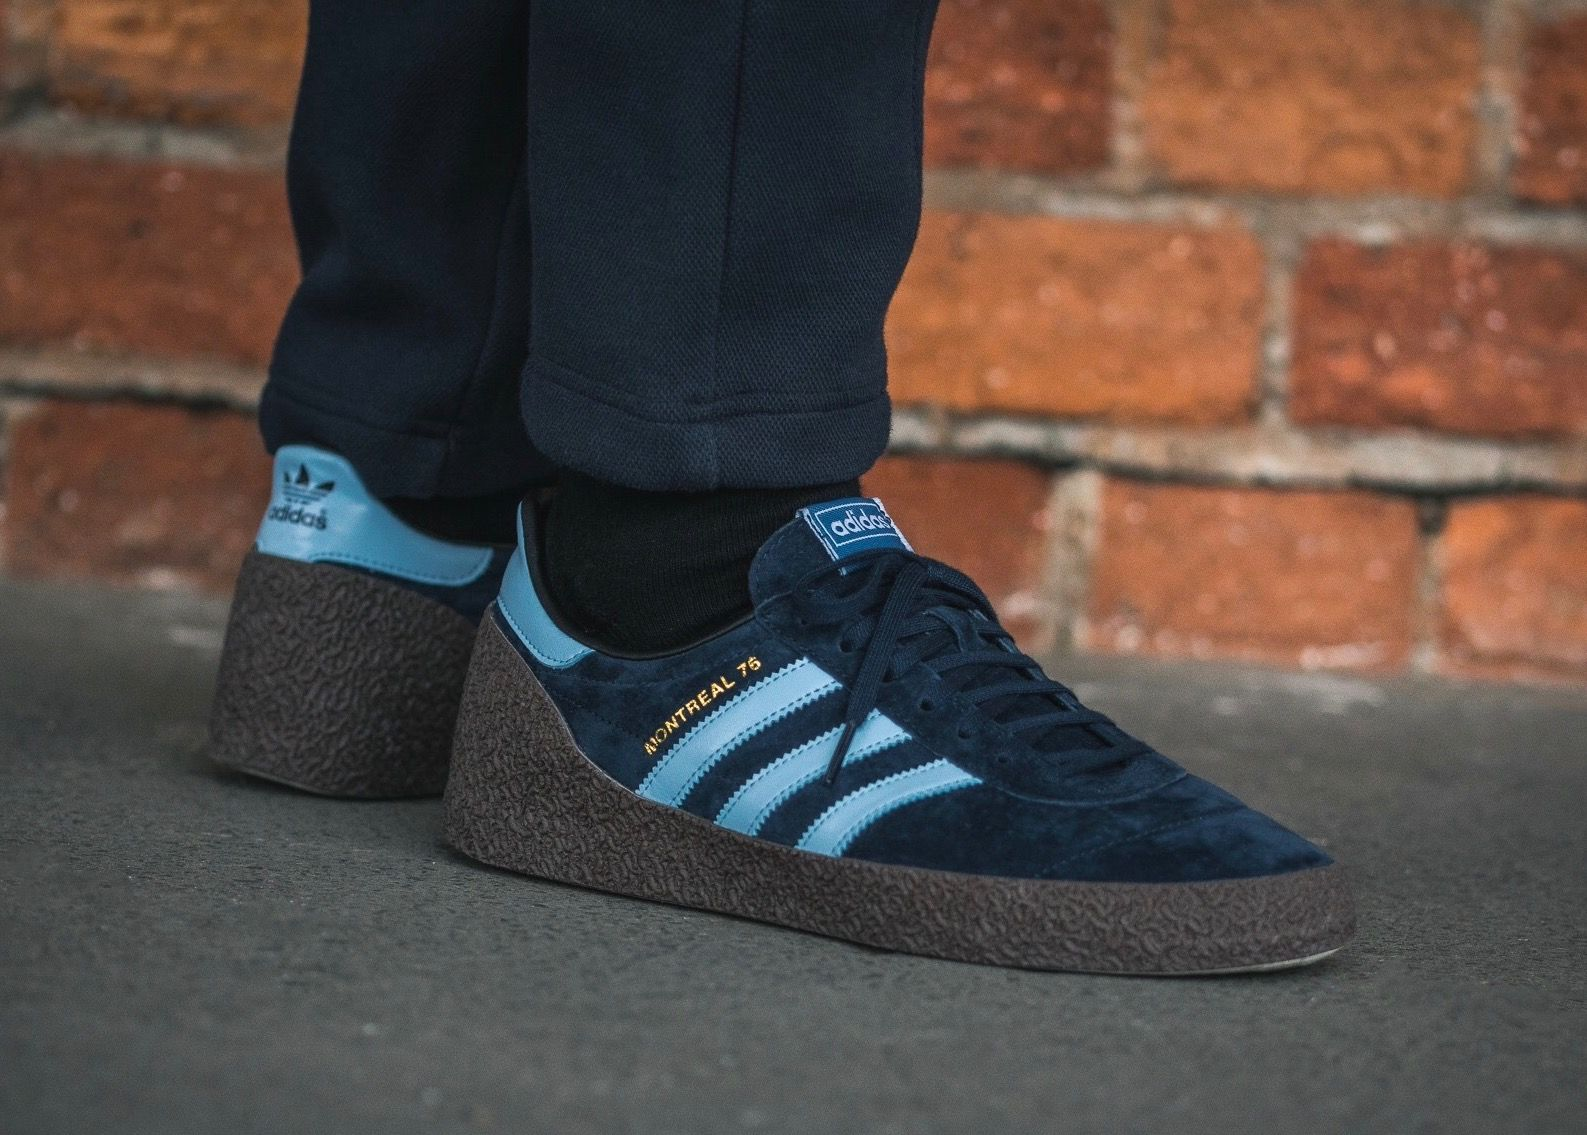 Montreal 76 Suede And Leather Sneakers adidas Originals qdPKT